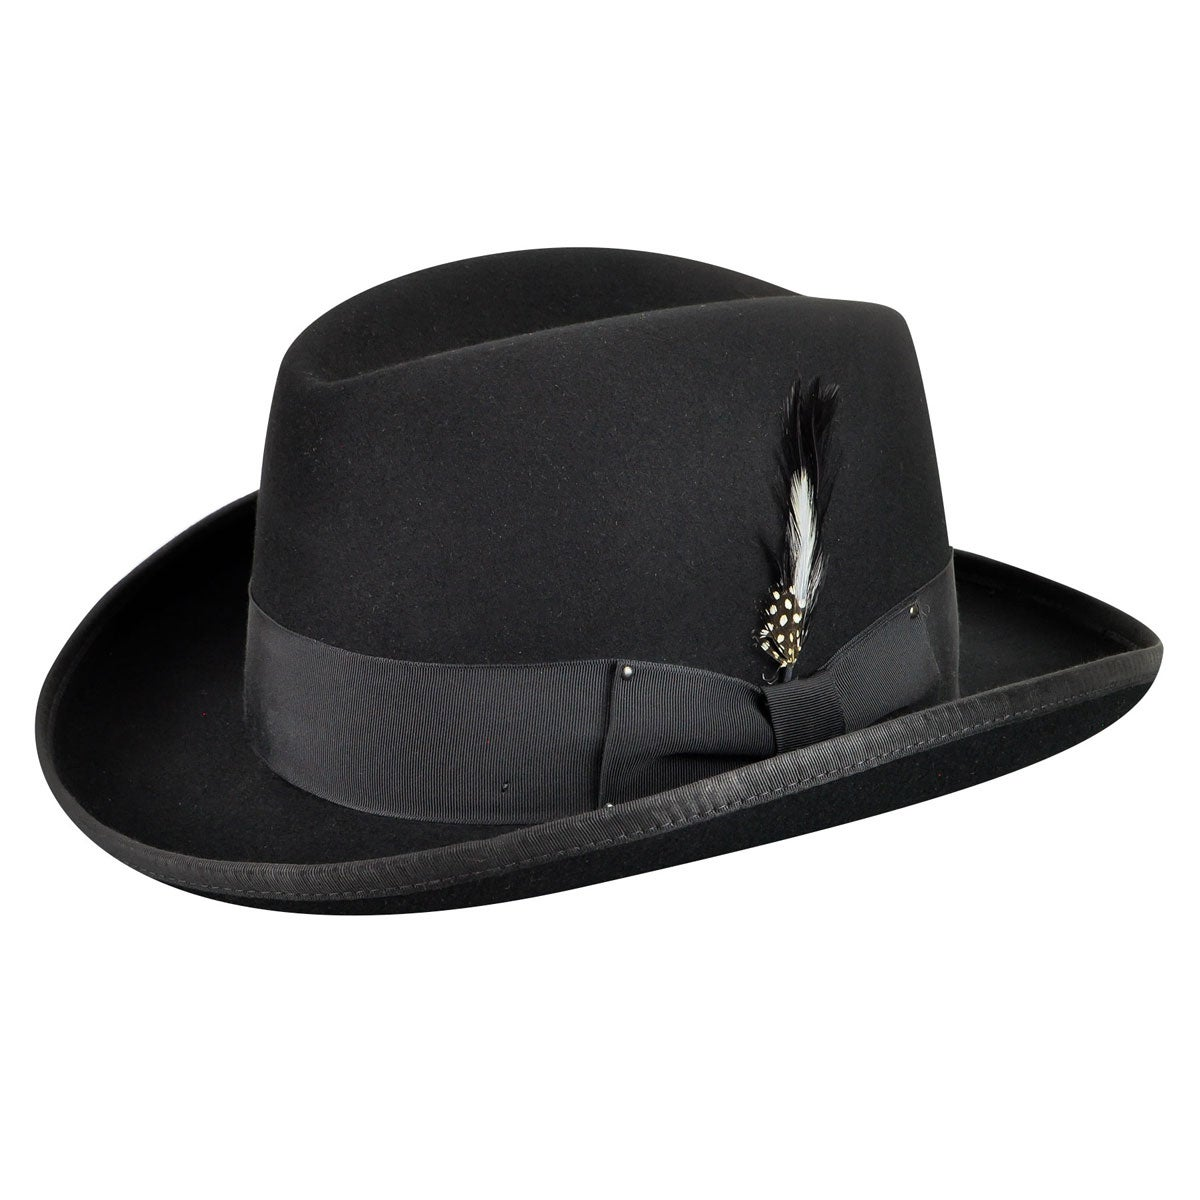 Bailey of Hollywood Godfather Homburg in Black